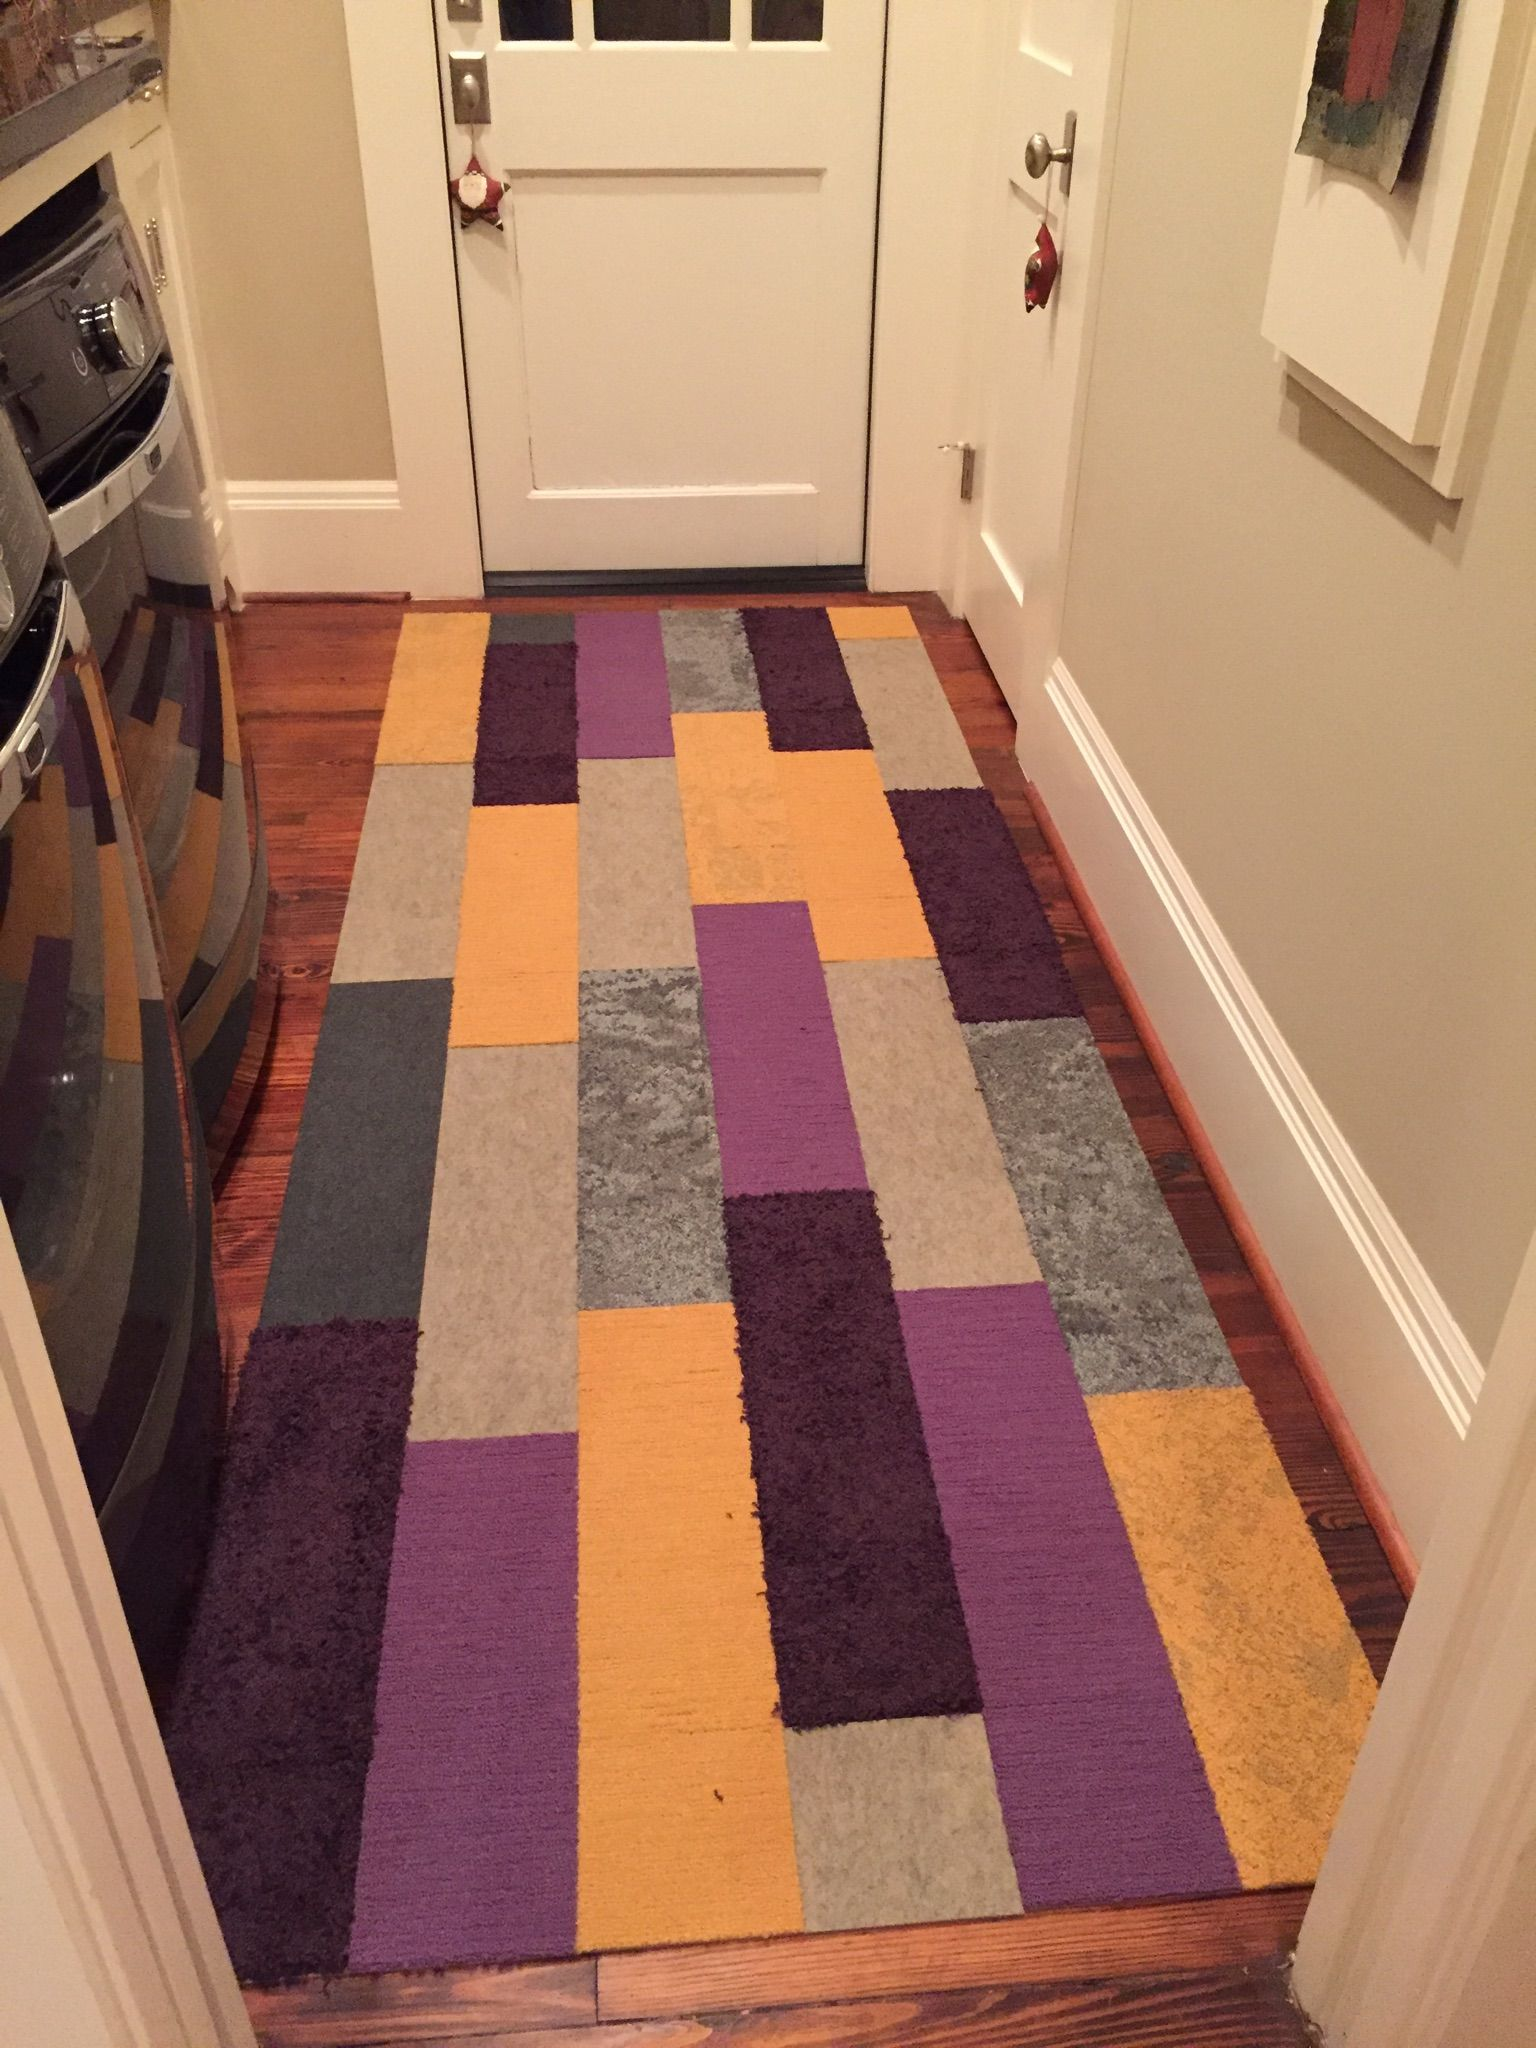 Fun runner in this laundry room flor carpet tiles down to earth fun runner in this laundry room flor carpet tiles down to earth marigold baanklon Image collections